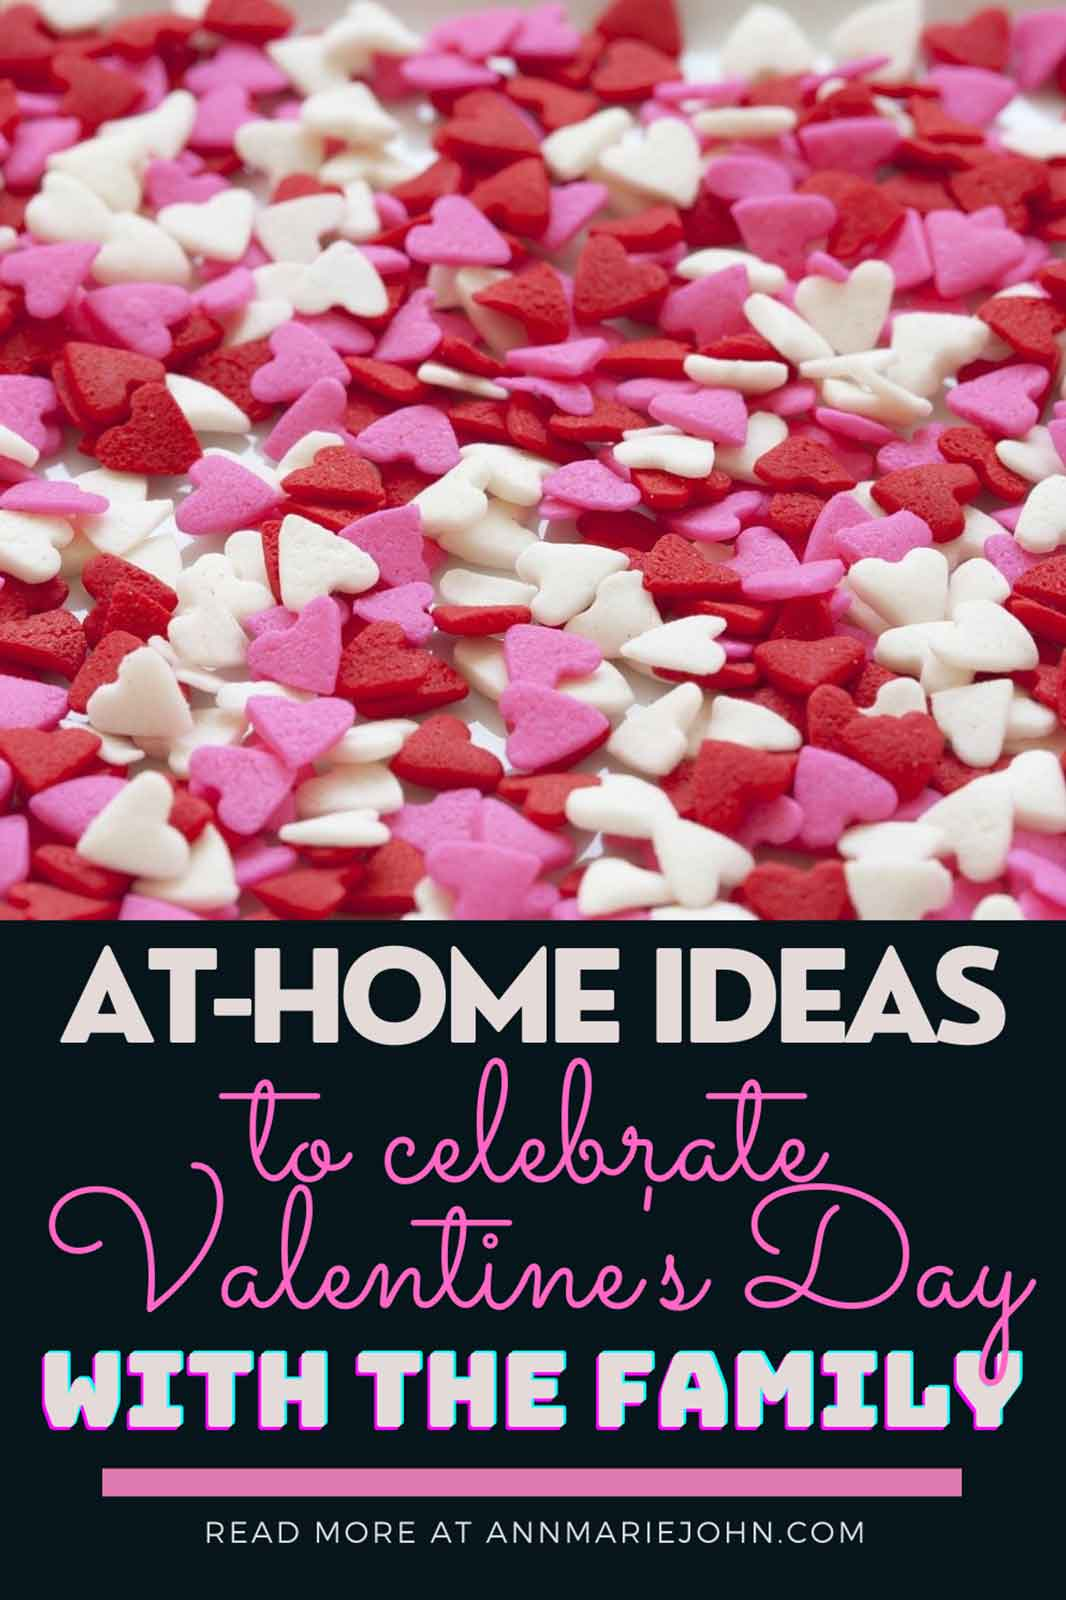 At-Home Ideas to Celebrate Valentine's Day with The Whole Family